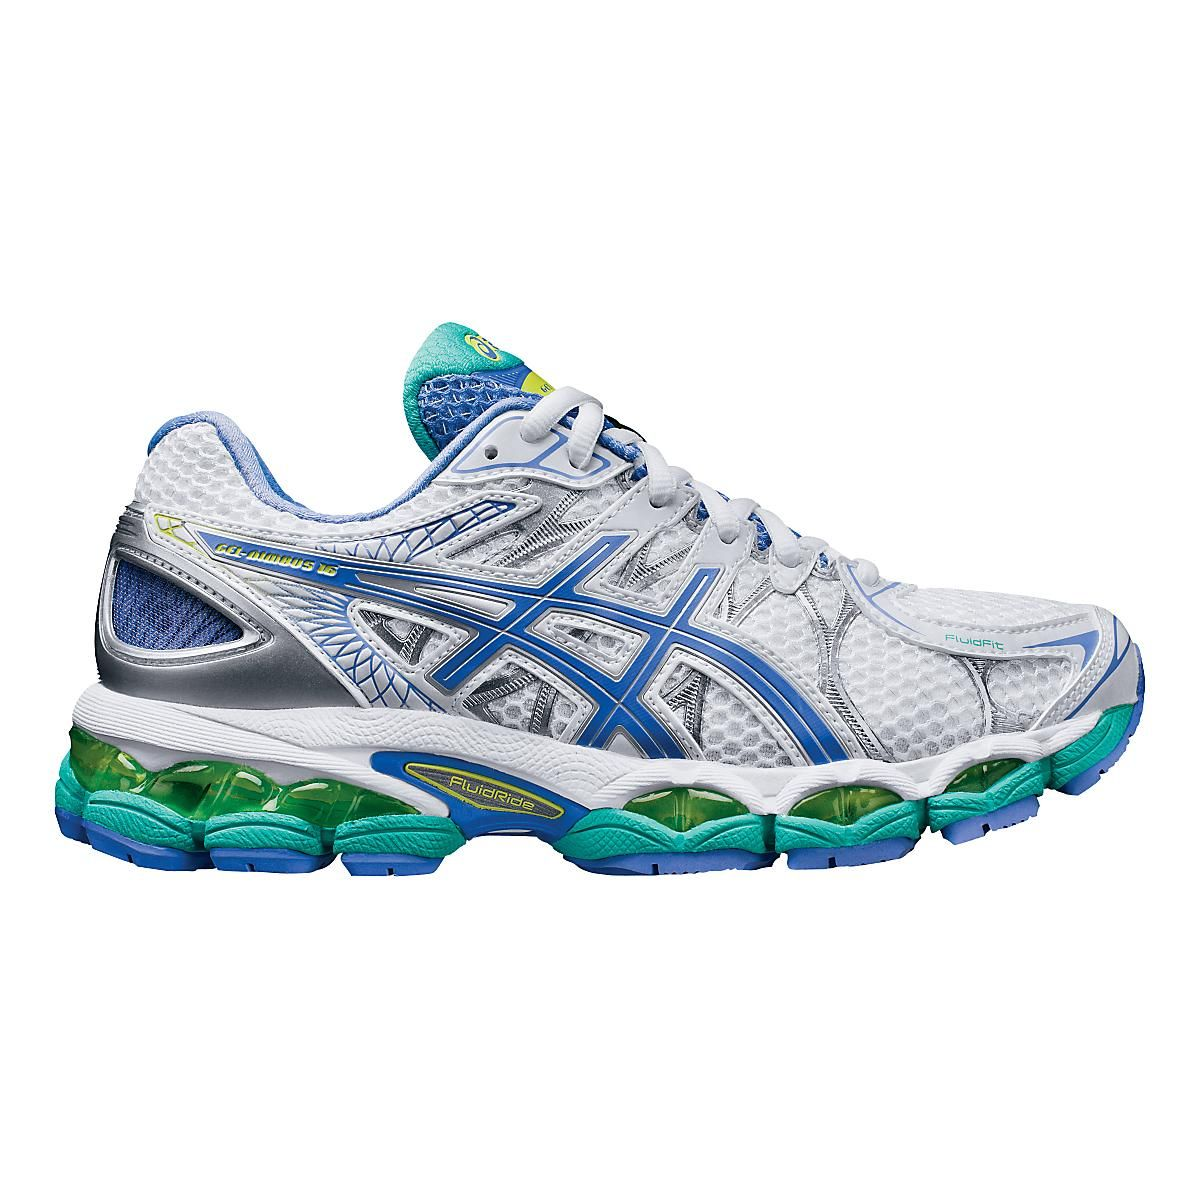 separation shoes 1dabb 7352f Well, look no further now that youve discovered the newly updated, plusher  than ever Womens ASICS GEL-Nimbus 16 running shoe